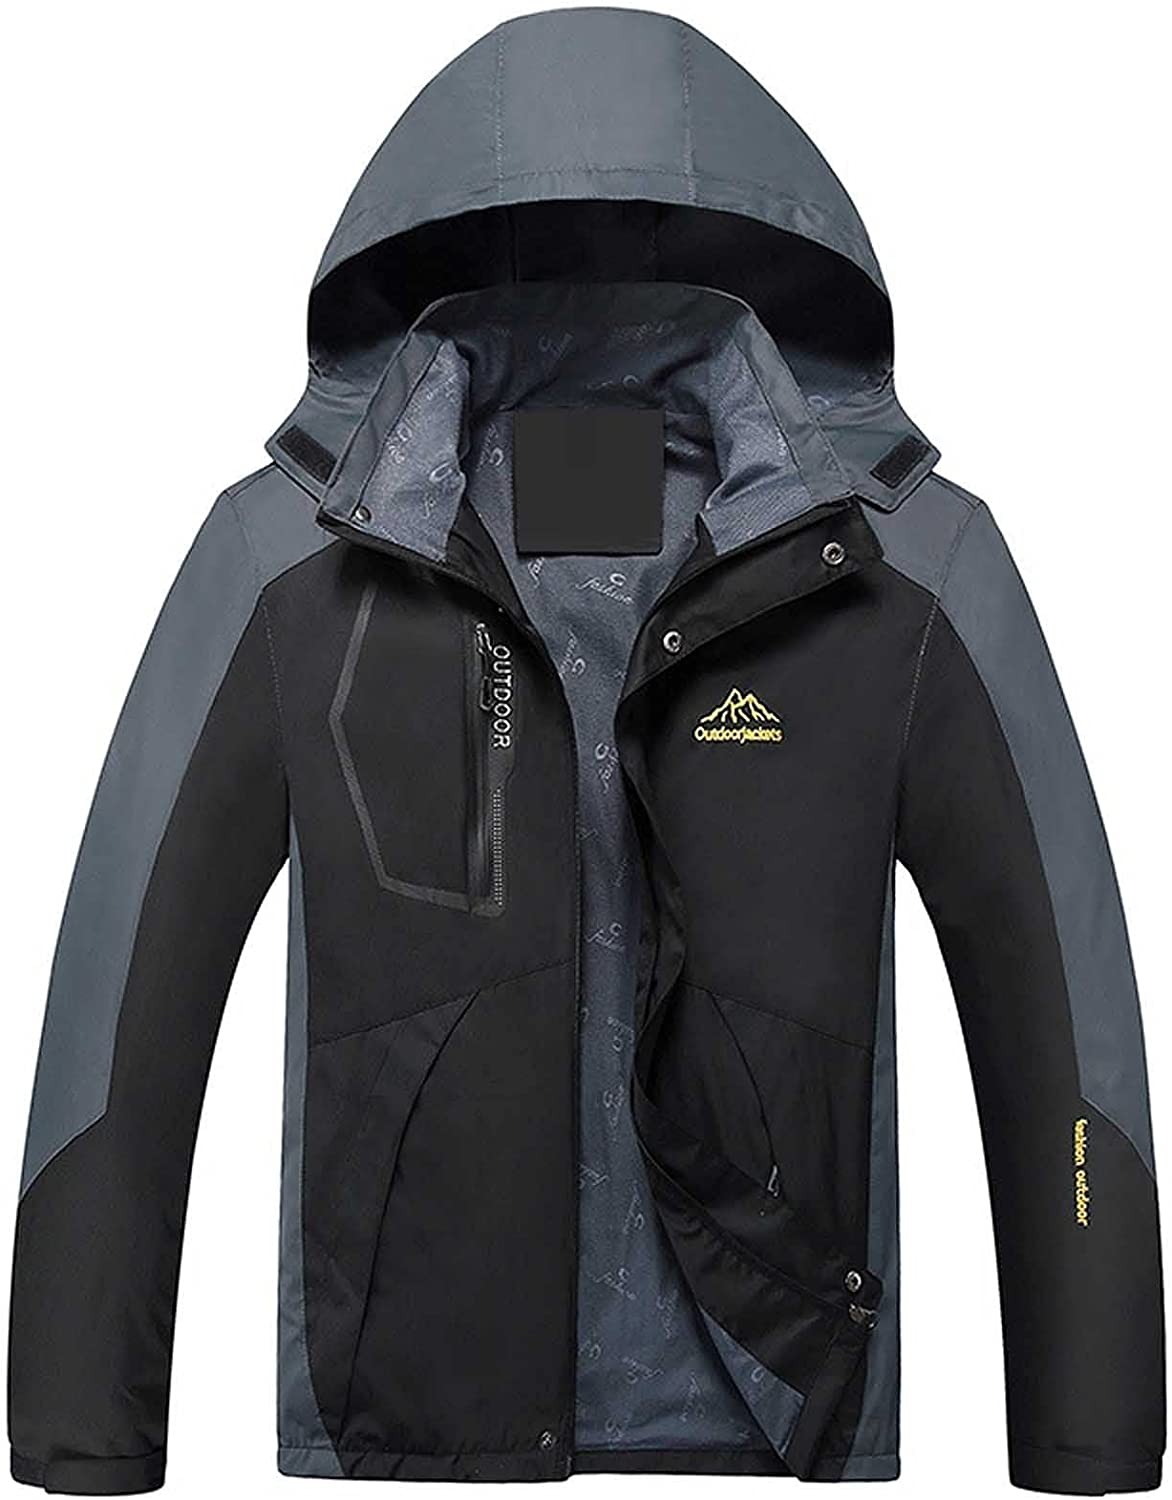 Jacket for Men Thin Windproof Coat Rain Jacket Fall Hooded Outwear Lightweight Outdoor Coat for Hiking Travel